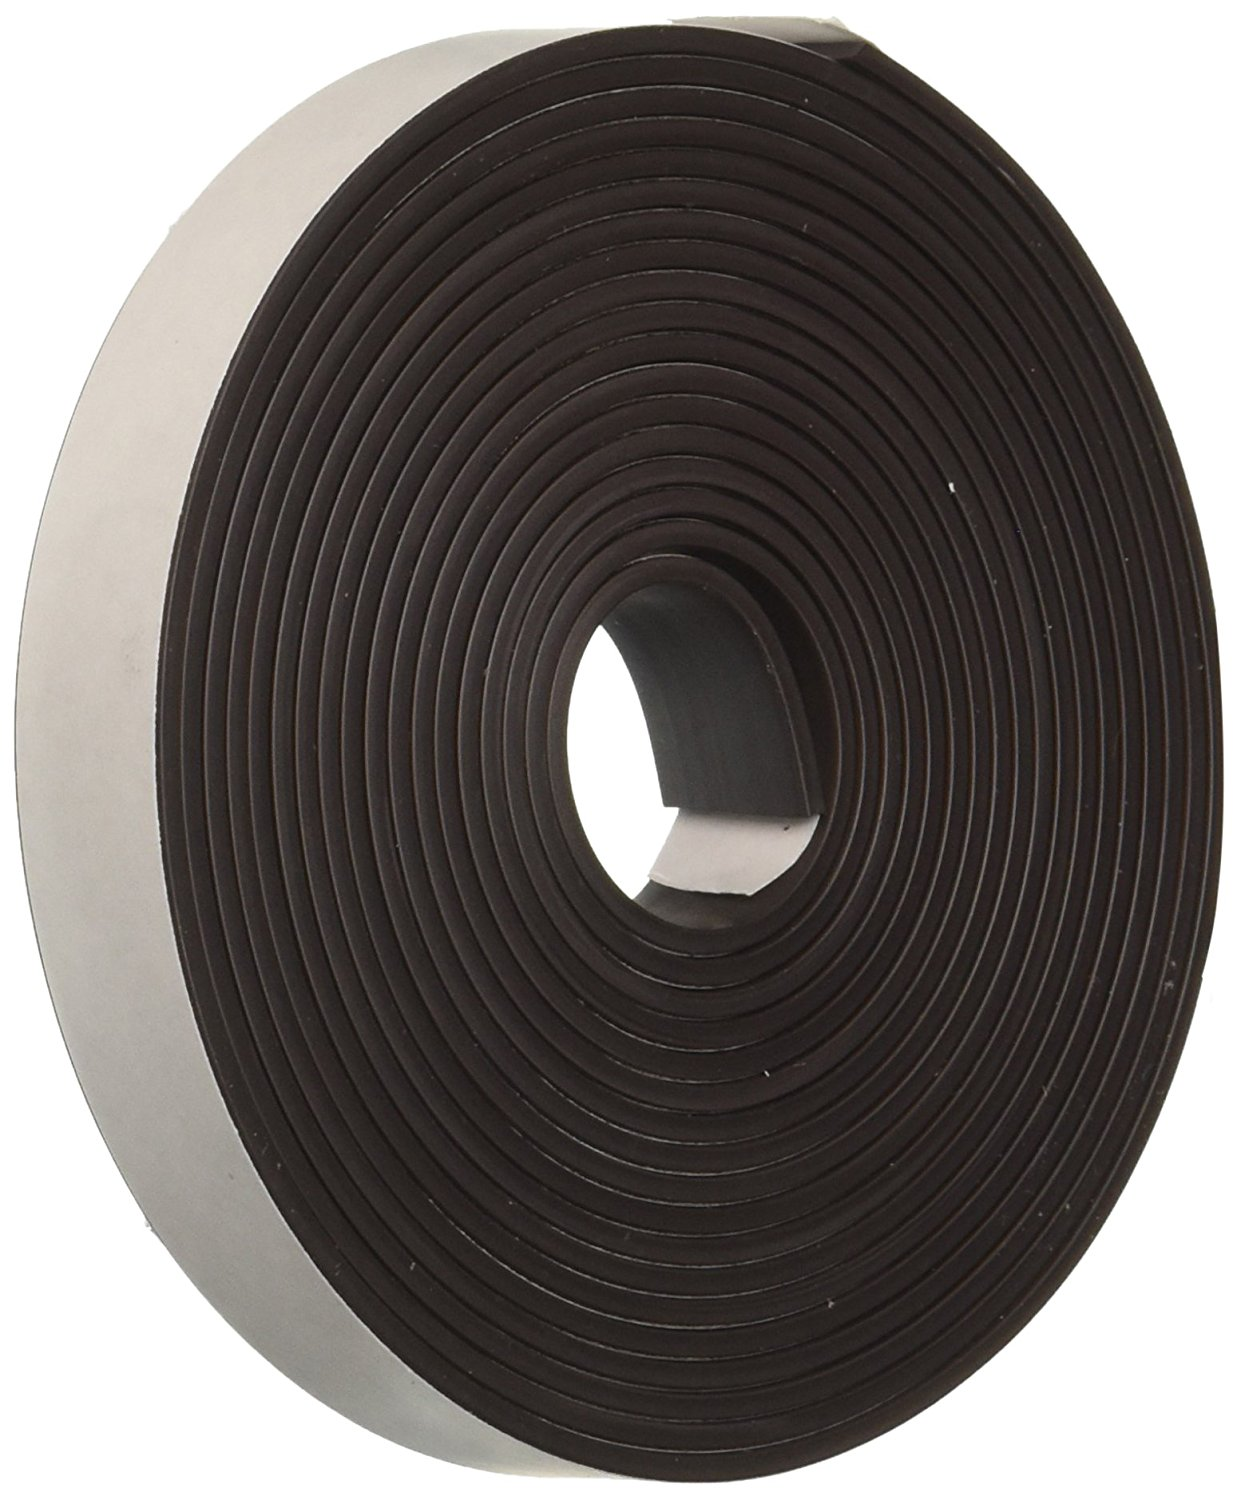 Hygloss Products, Inc. Magnetic Tape, Self- Adhesive, 1/2-Inch x 120-Inch